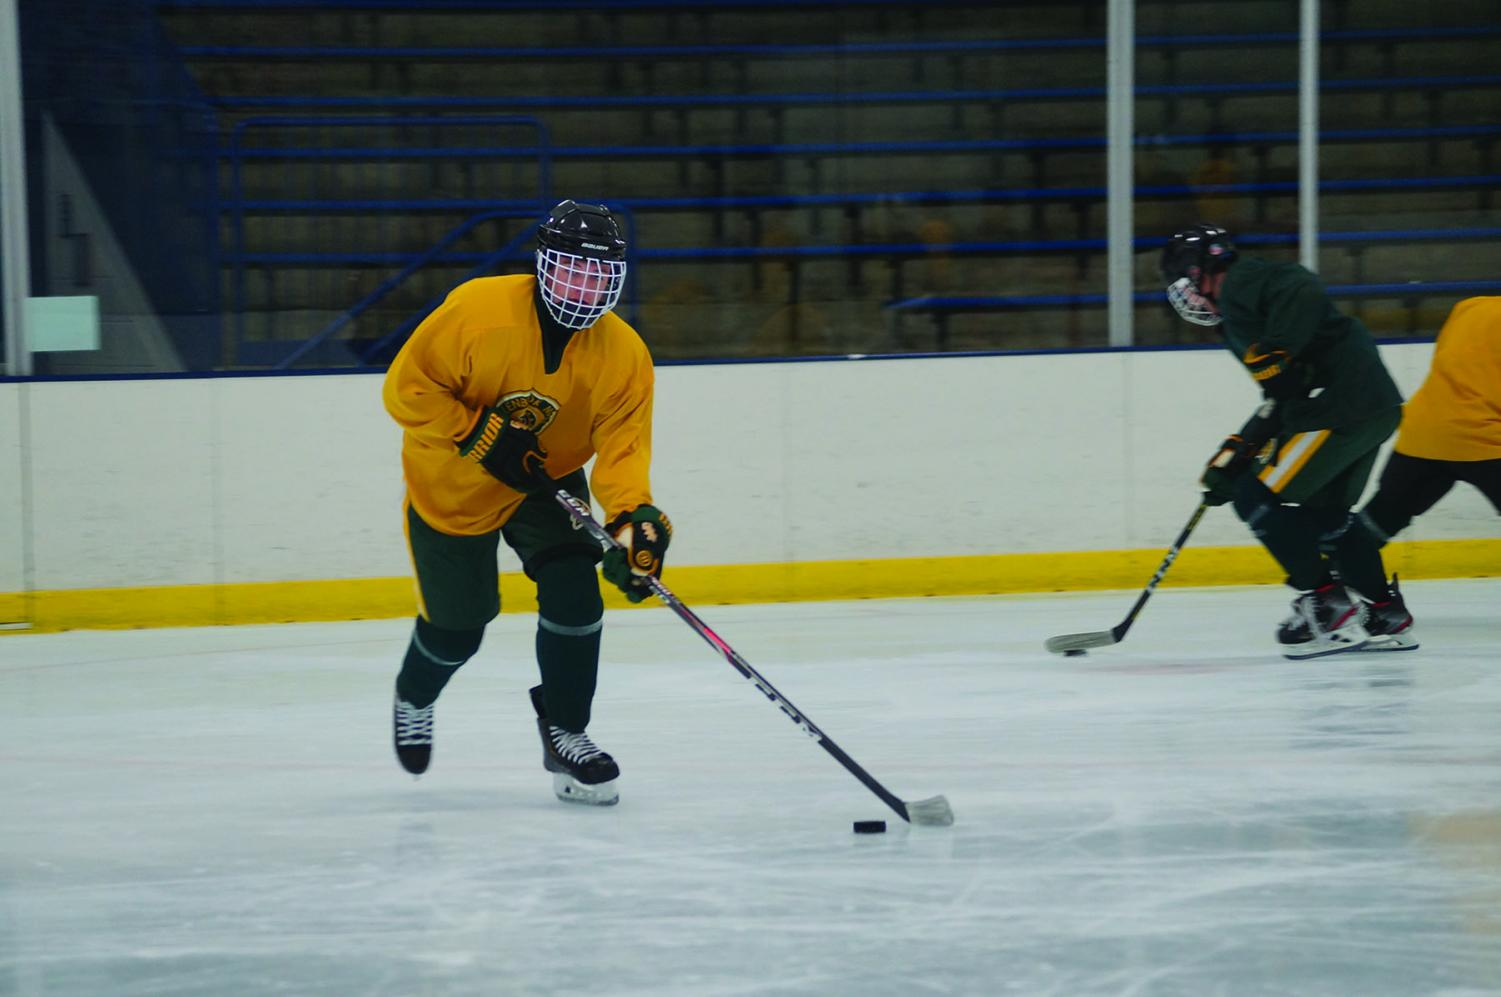 Sophomore Owen Just works on his puck handling at a practice on Oct. 29. Just started his hockey career in the GBN youth system with the Northbrook Bluehawks, but then switched to play club hockey for Chicago Young Americans when he was seven years old. Just now plays for the GBN varsity team. Photo by Dylan Buckner